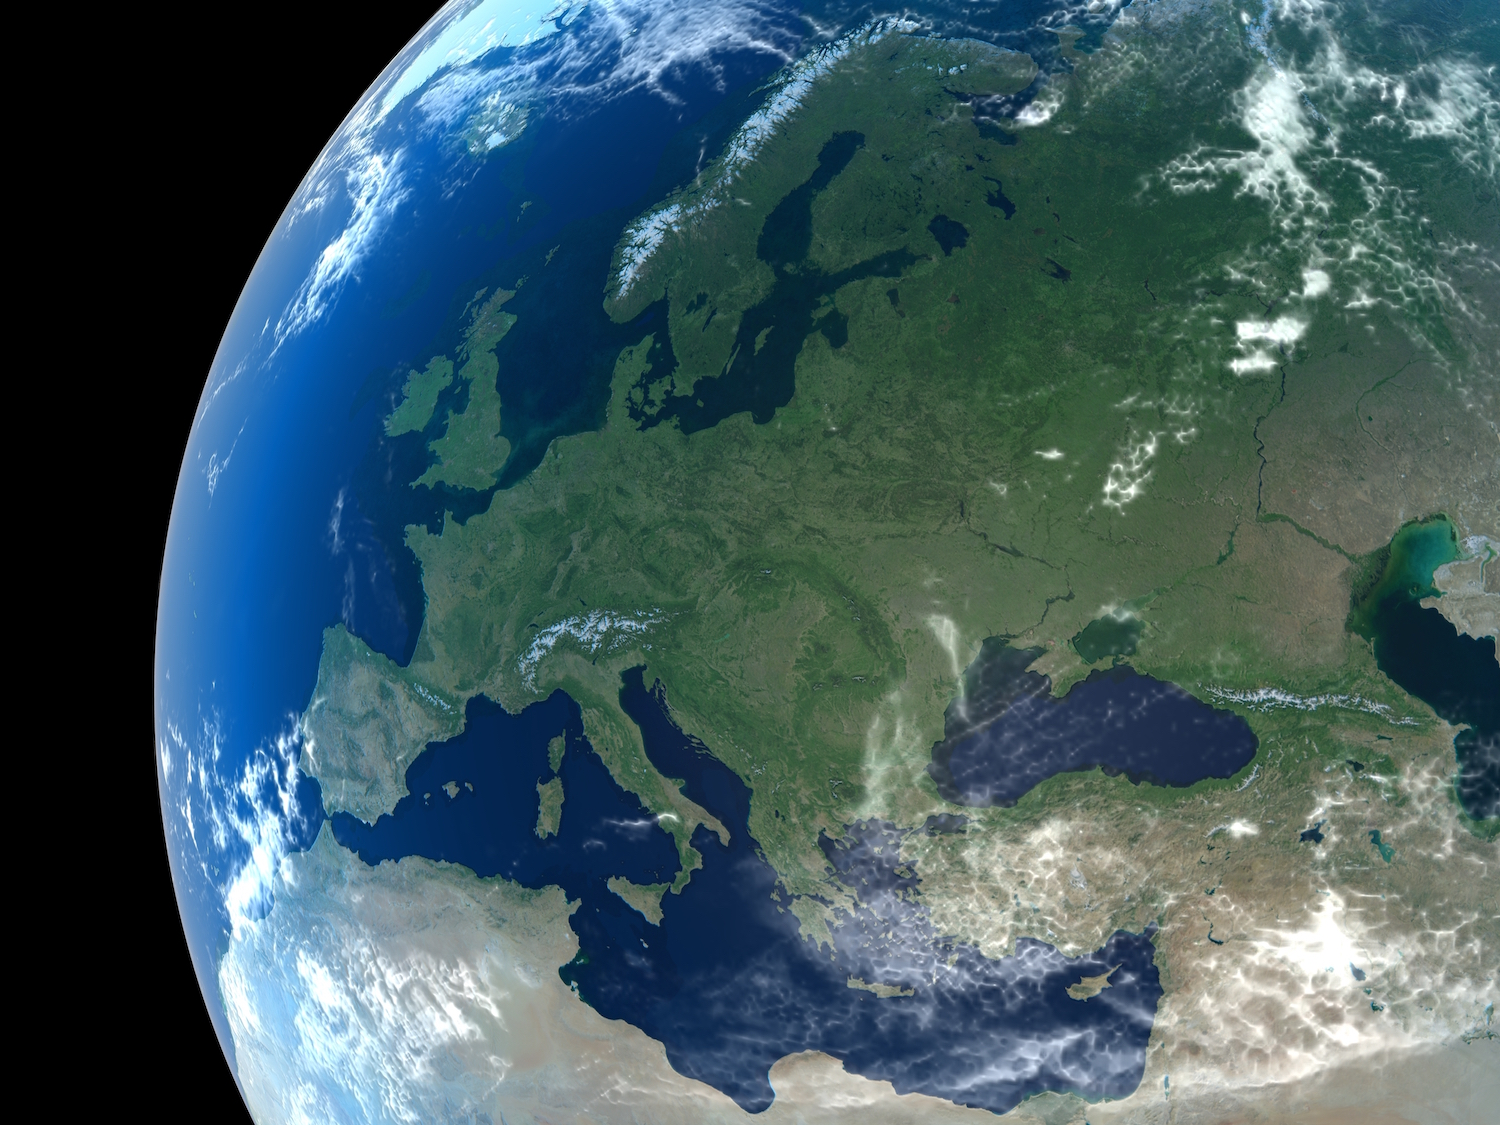 According to a new study, the interaction of two major climate trends affects weather cycles and ecosystems.